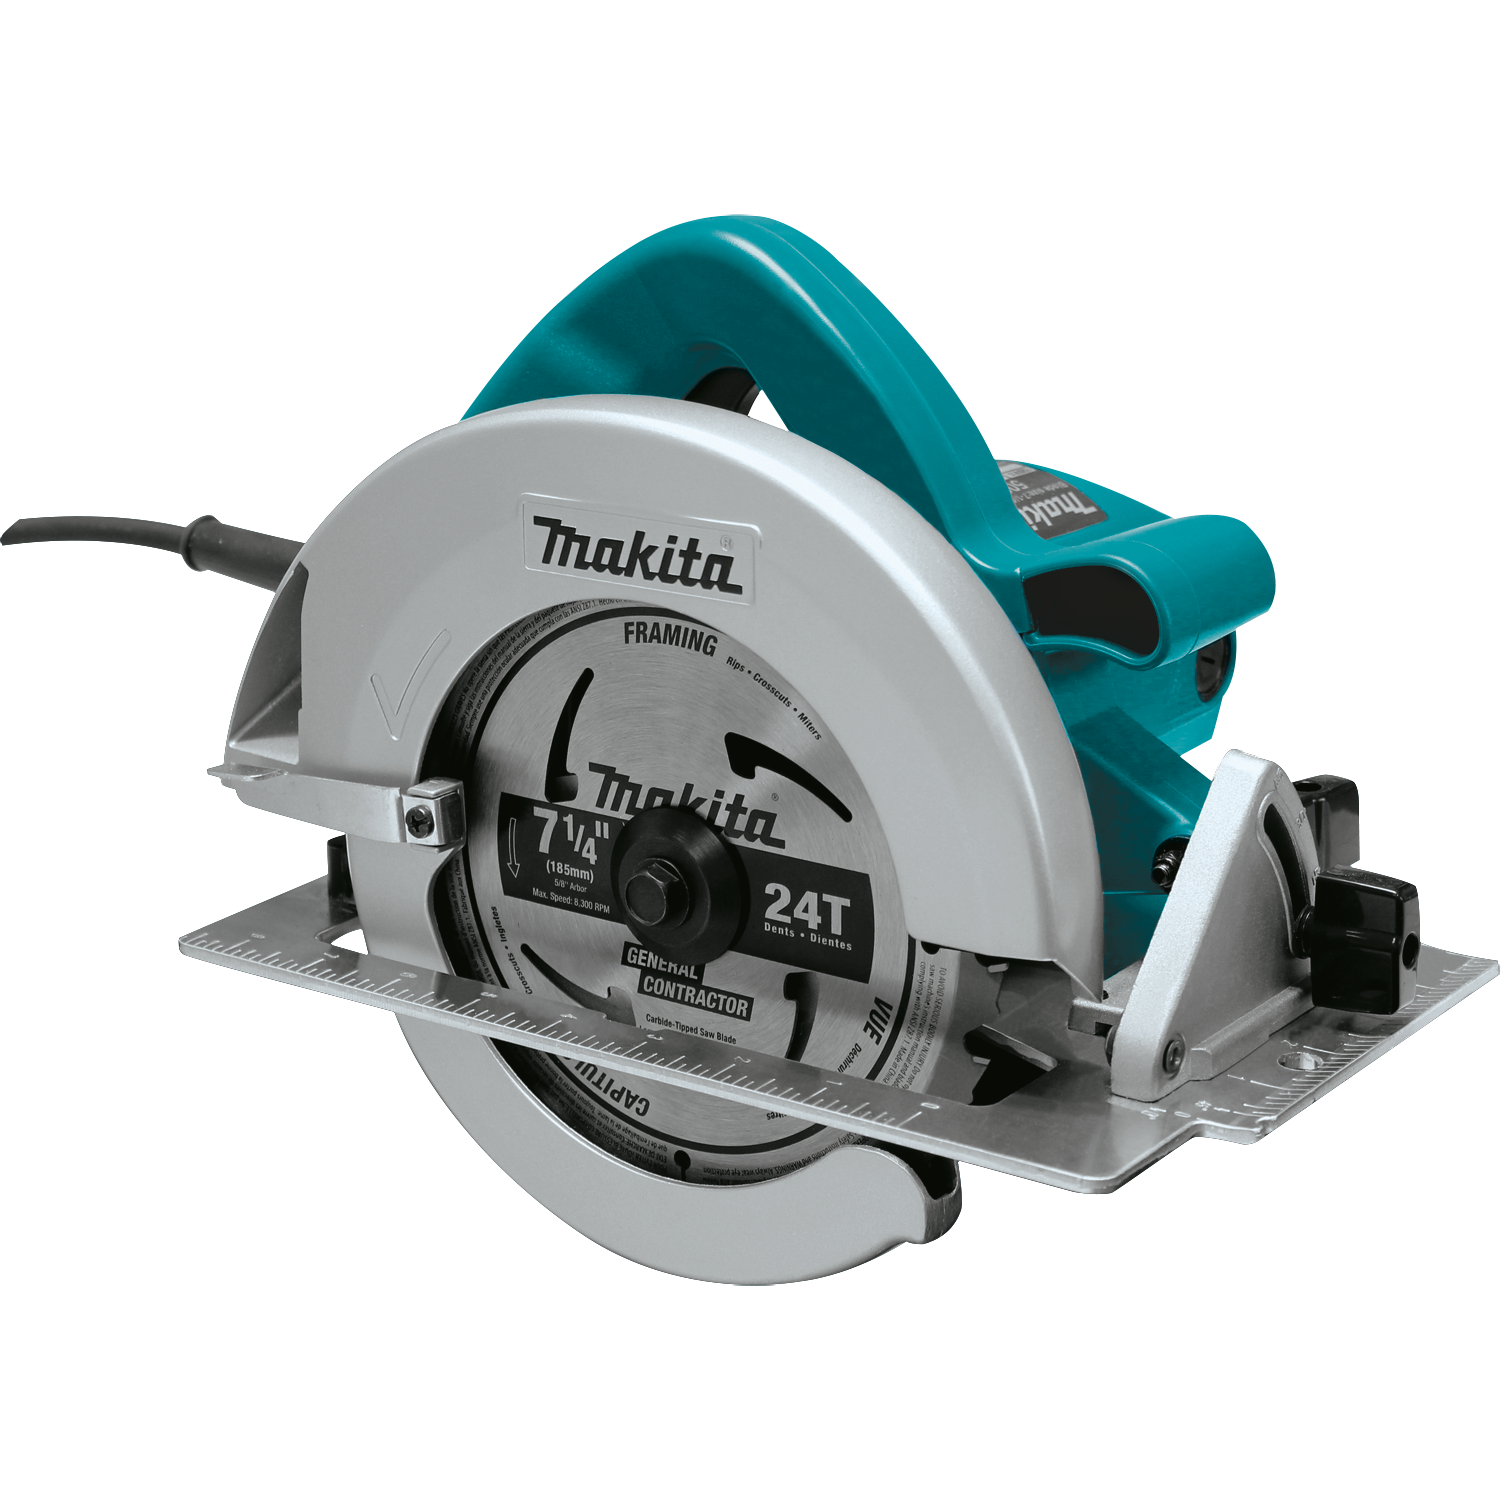 Makita usa product details 5007f 5007f greentooth Gallery